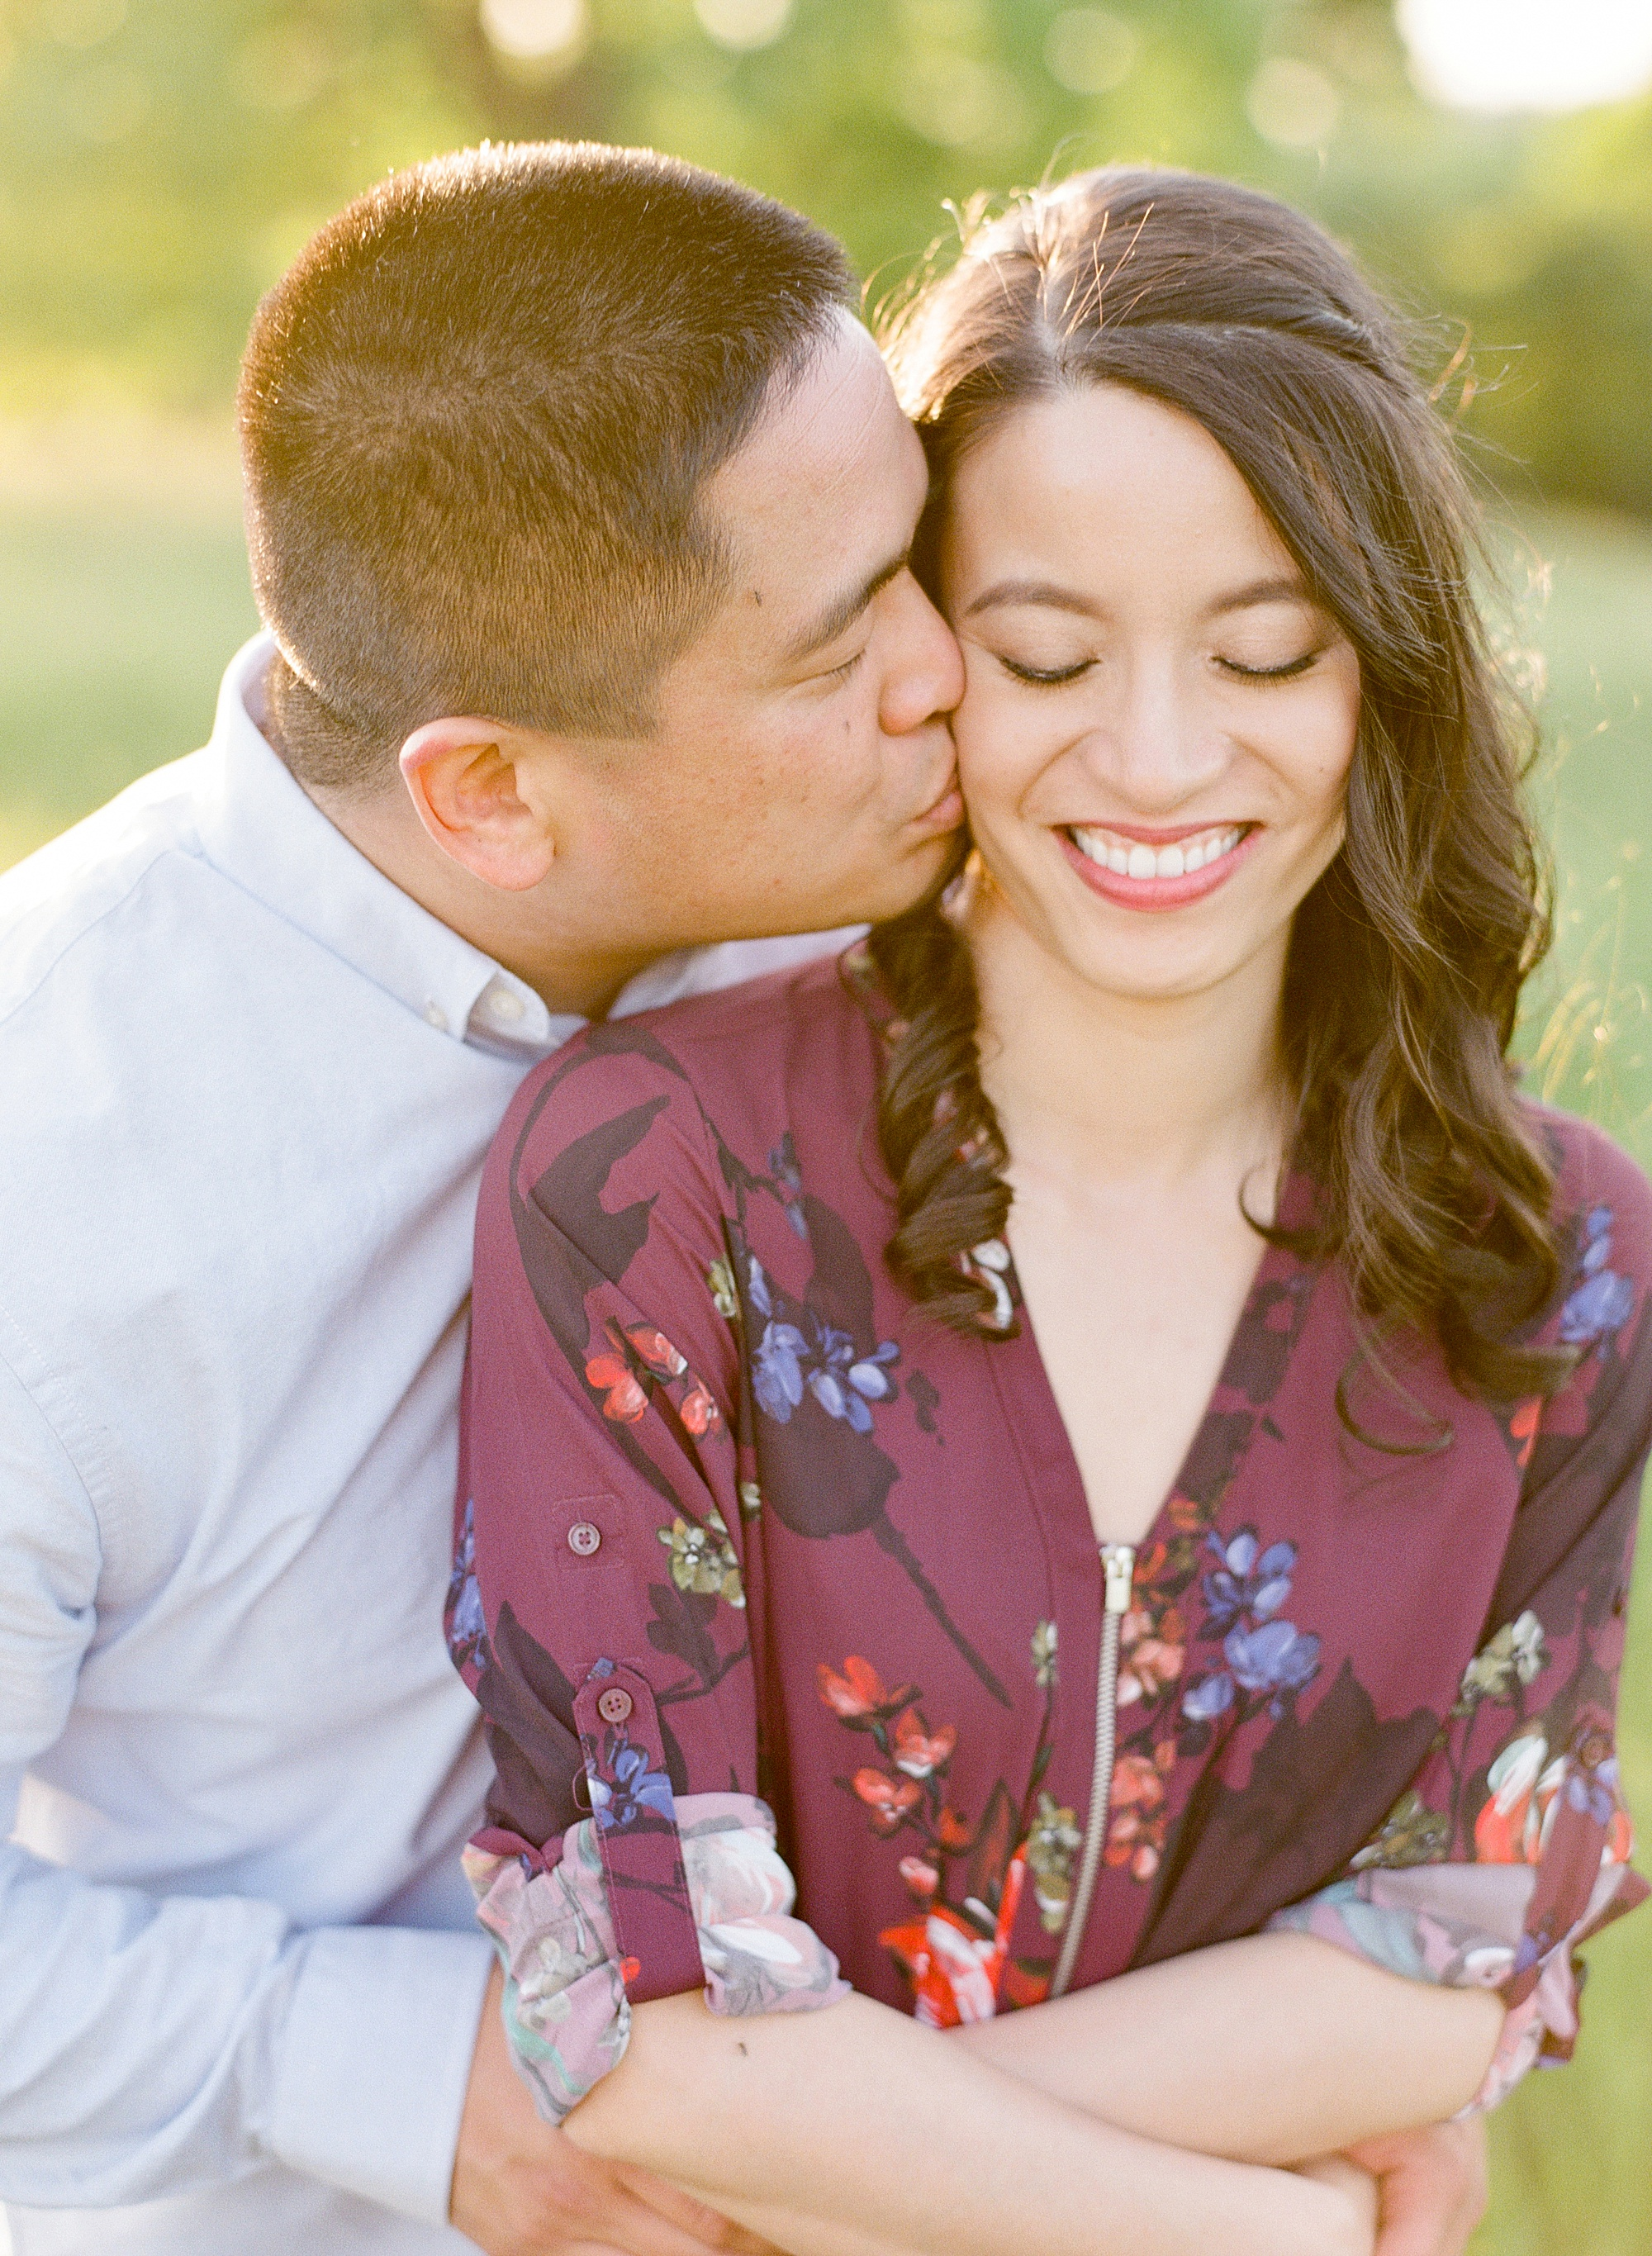 El Dorado Hills Engagement Session - Wendy and Danny - Ashley Baumgartner - Sacramento Wedding Photographer and Sacramento Wedding Photography - Bay Area Wedding Photographer_0021.jpg